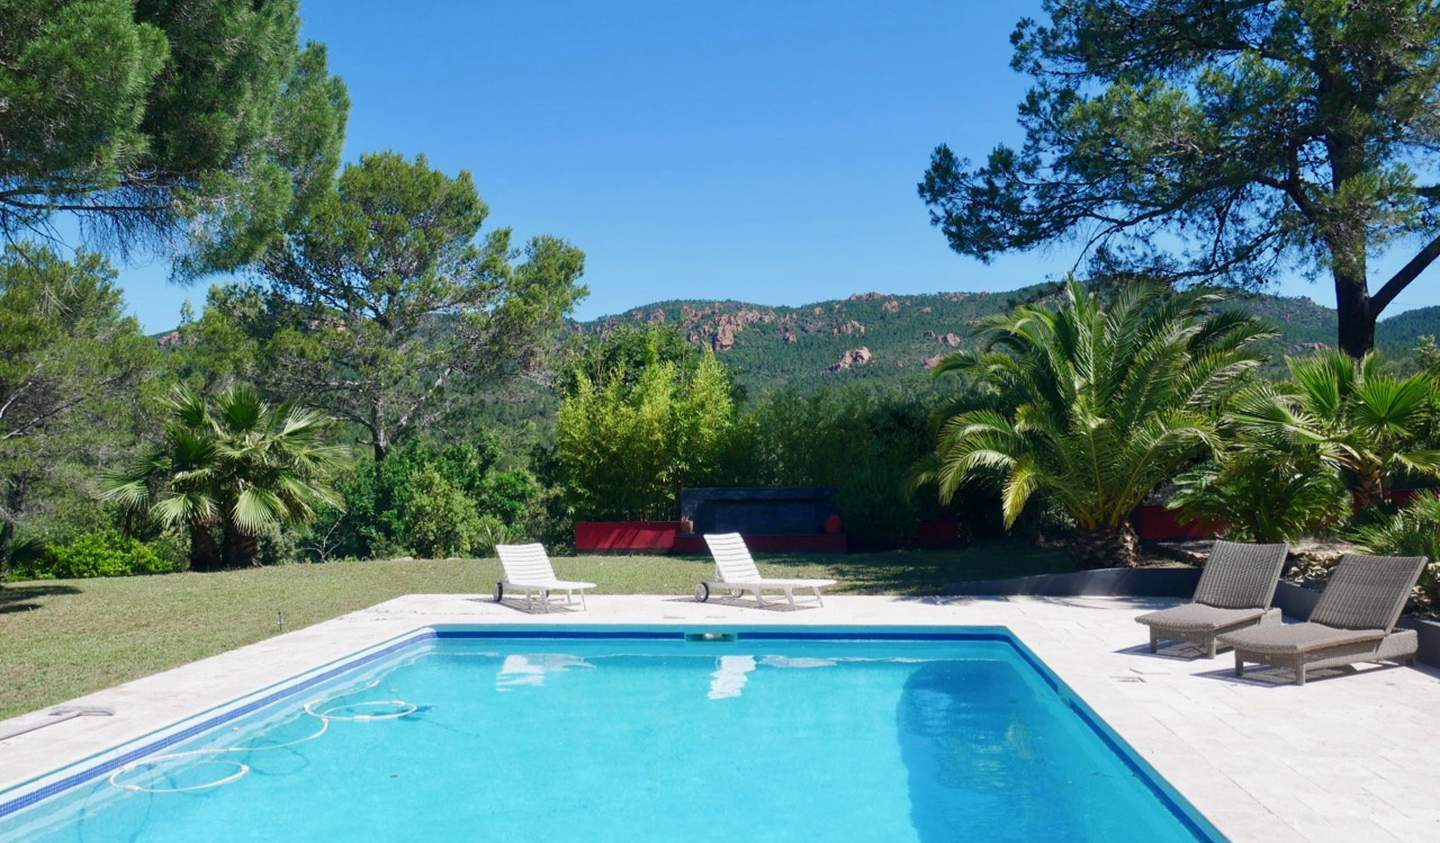 Villa with pool and terrace Puget-sur-Argens